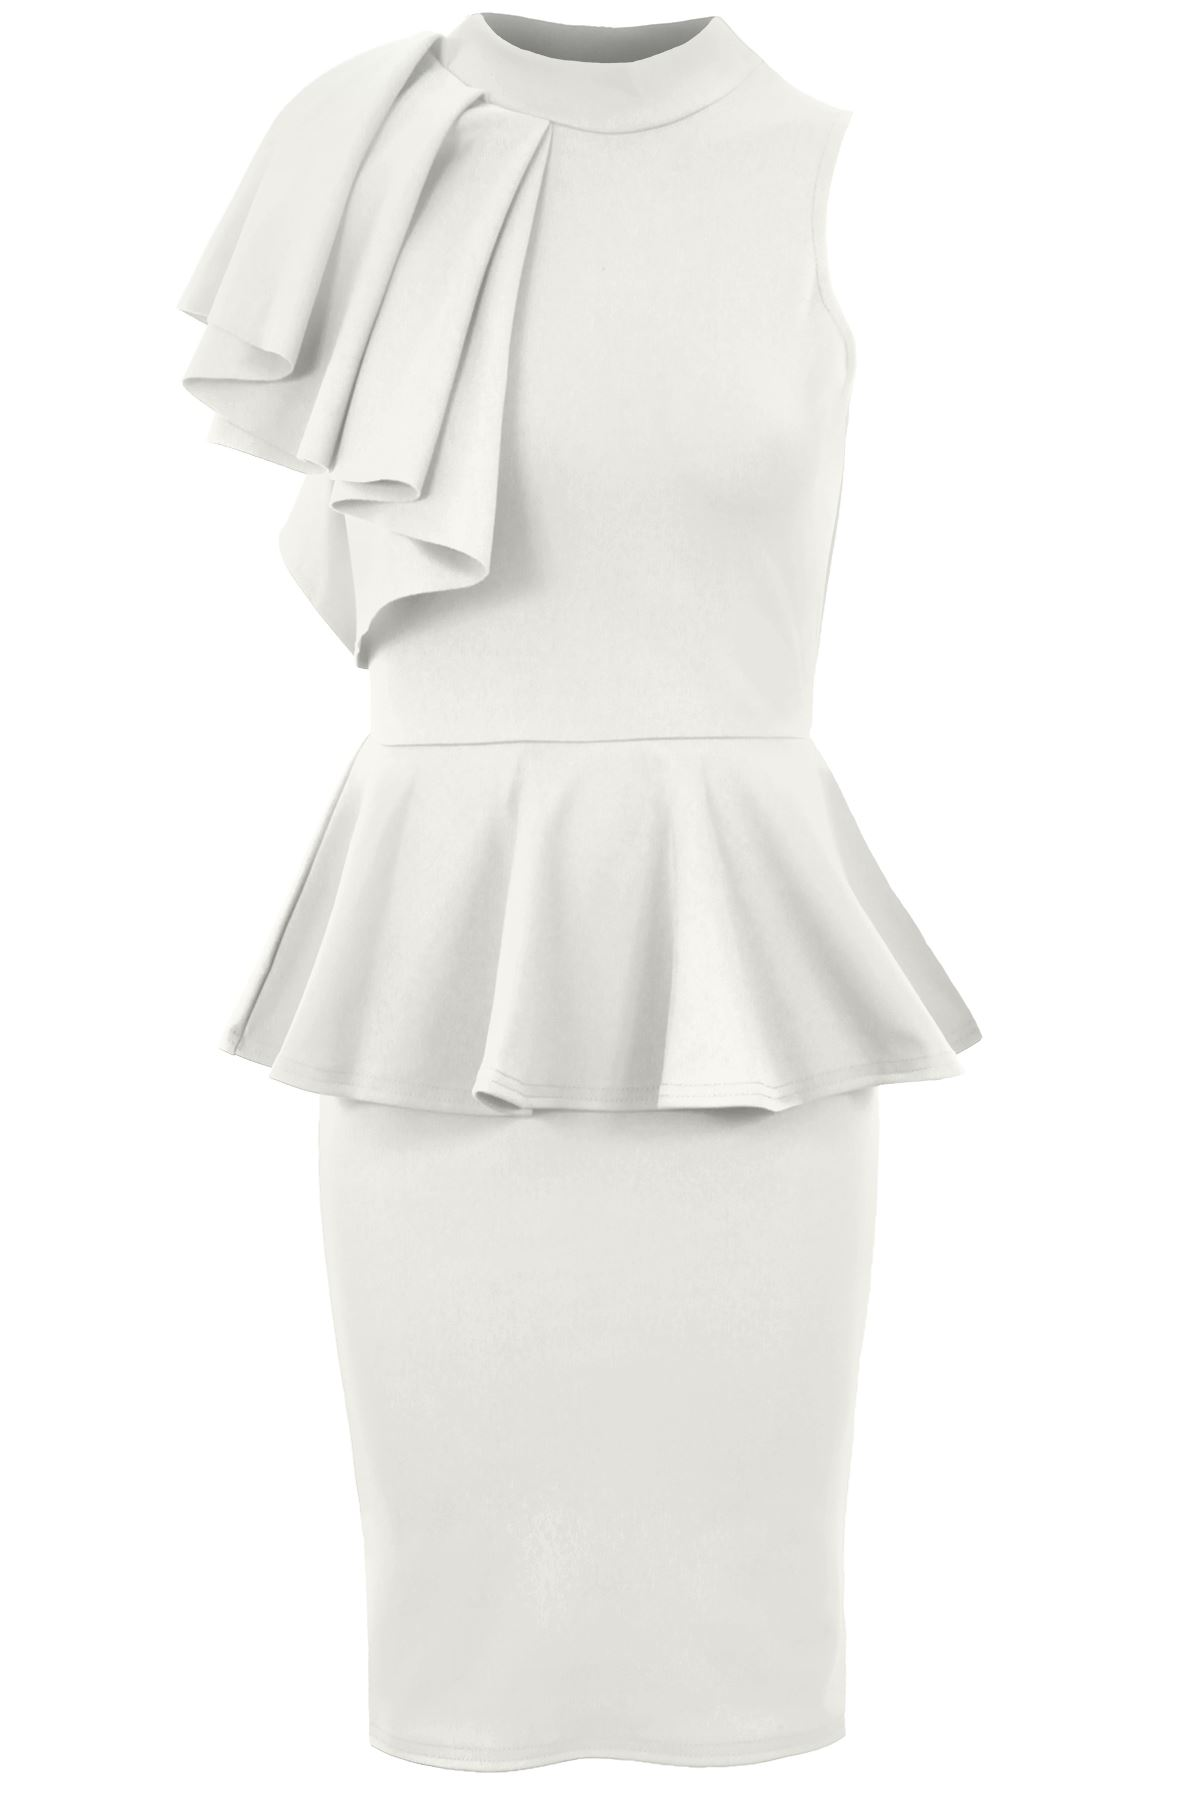 Ladies Sleeveless Ruffle Frill Shoulder Women\'s Peplum Bodycon ...